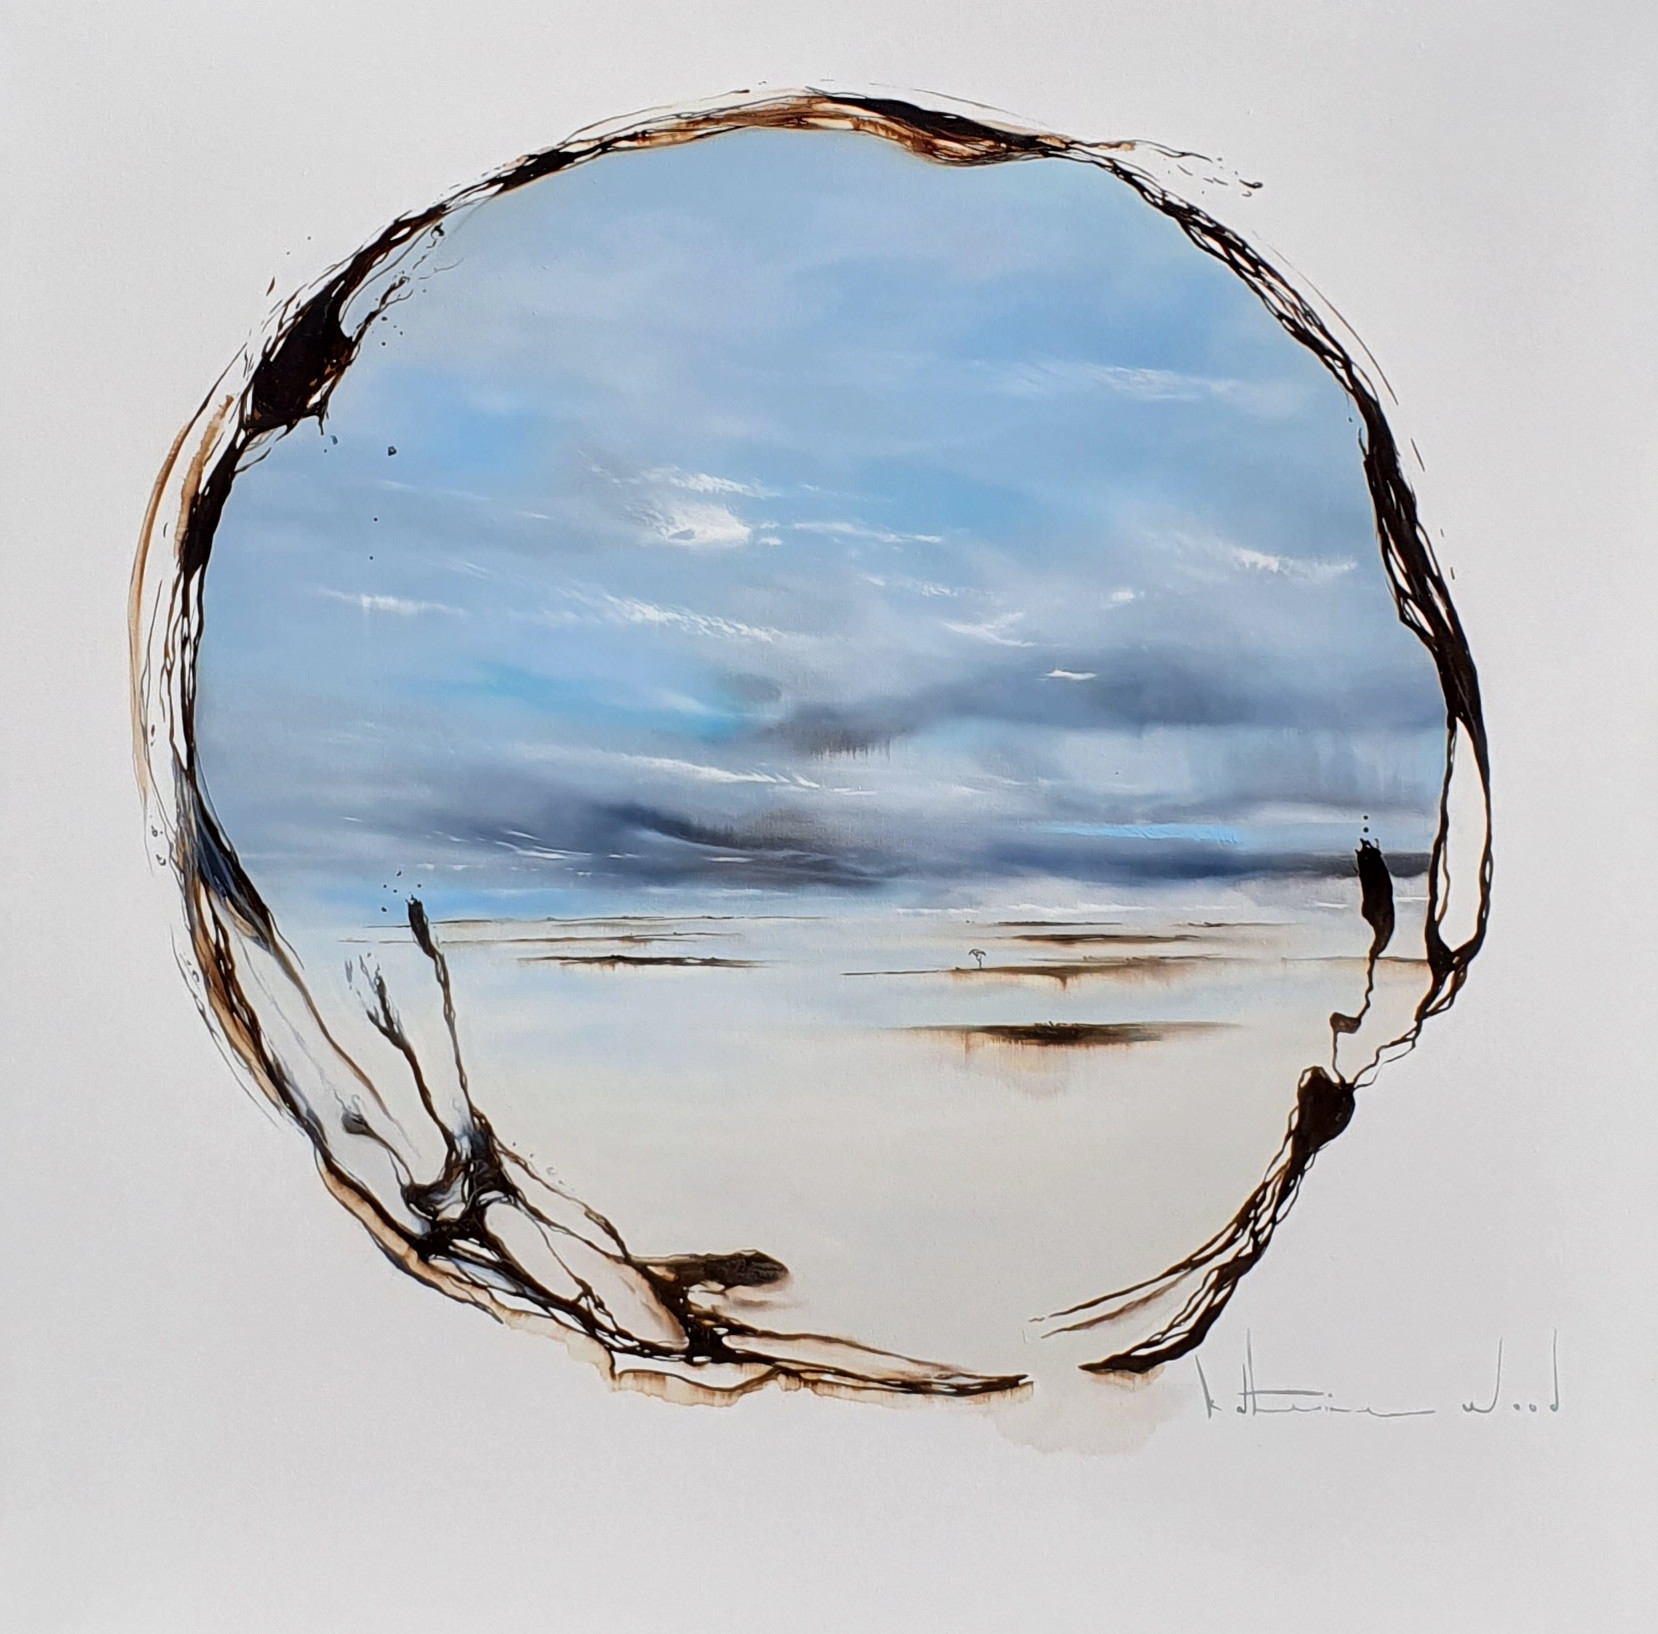 In The Stillness (Enso)